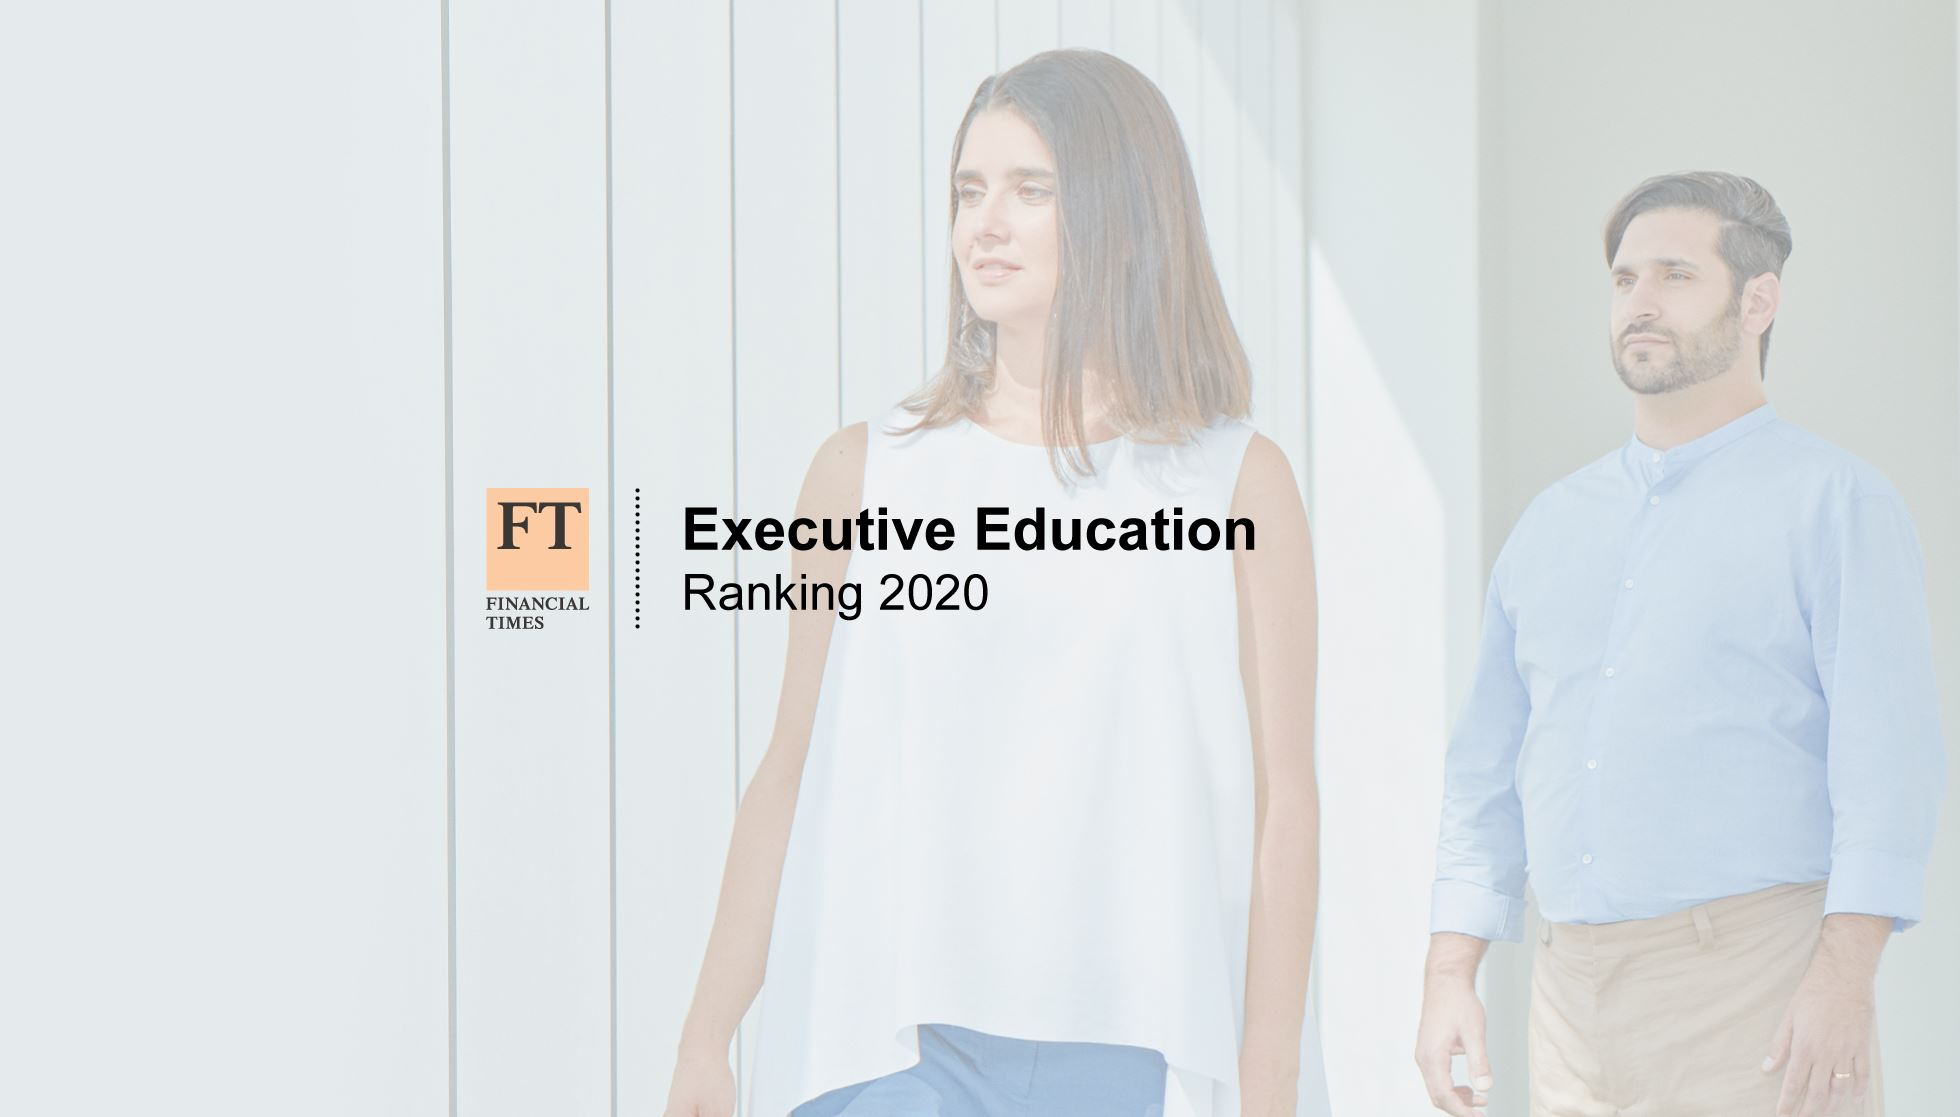 Nova SBE Executive Education Is No. 1 in Portugal in the 2020 Financial Times Ranking